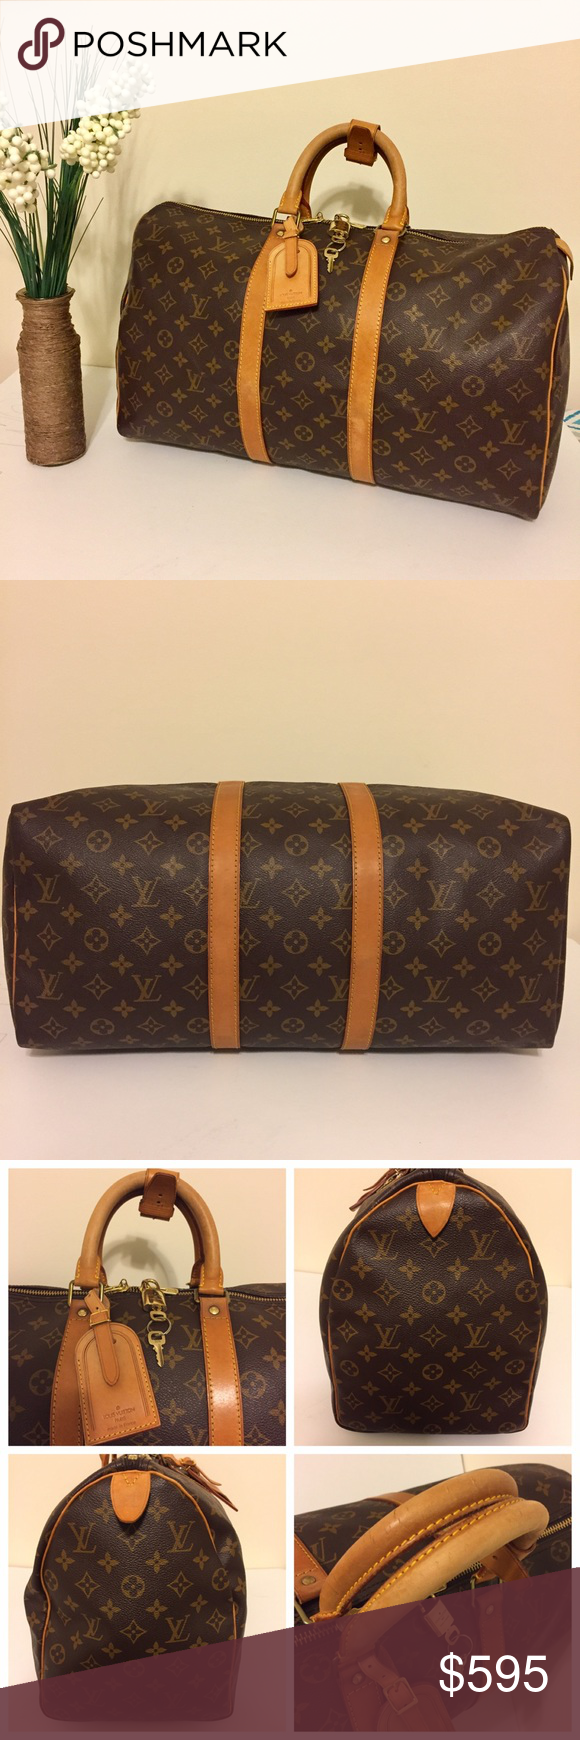 1315818c08f4 Authentic Louis Vuitton Keepall 45 Authentic. Date Code SP1901. Made in  France. Complete set! Canvas is excellent. Vachetta is a beautiful honey  patina.